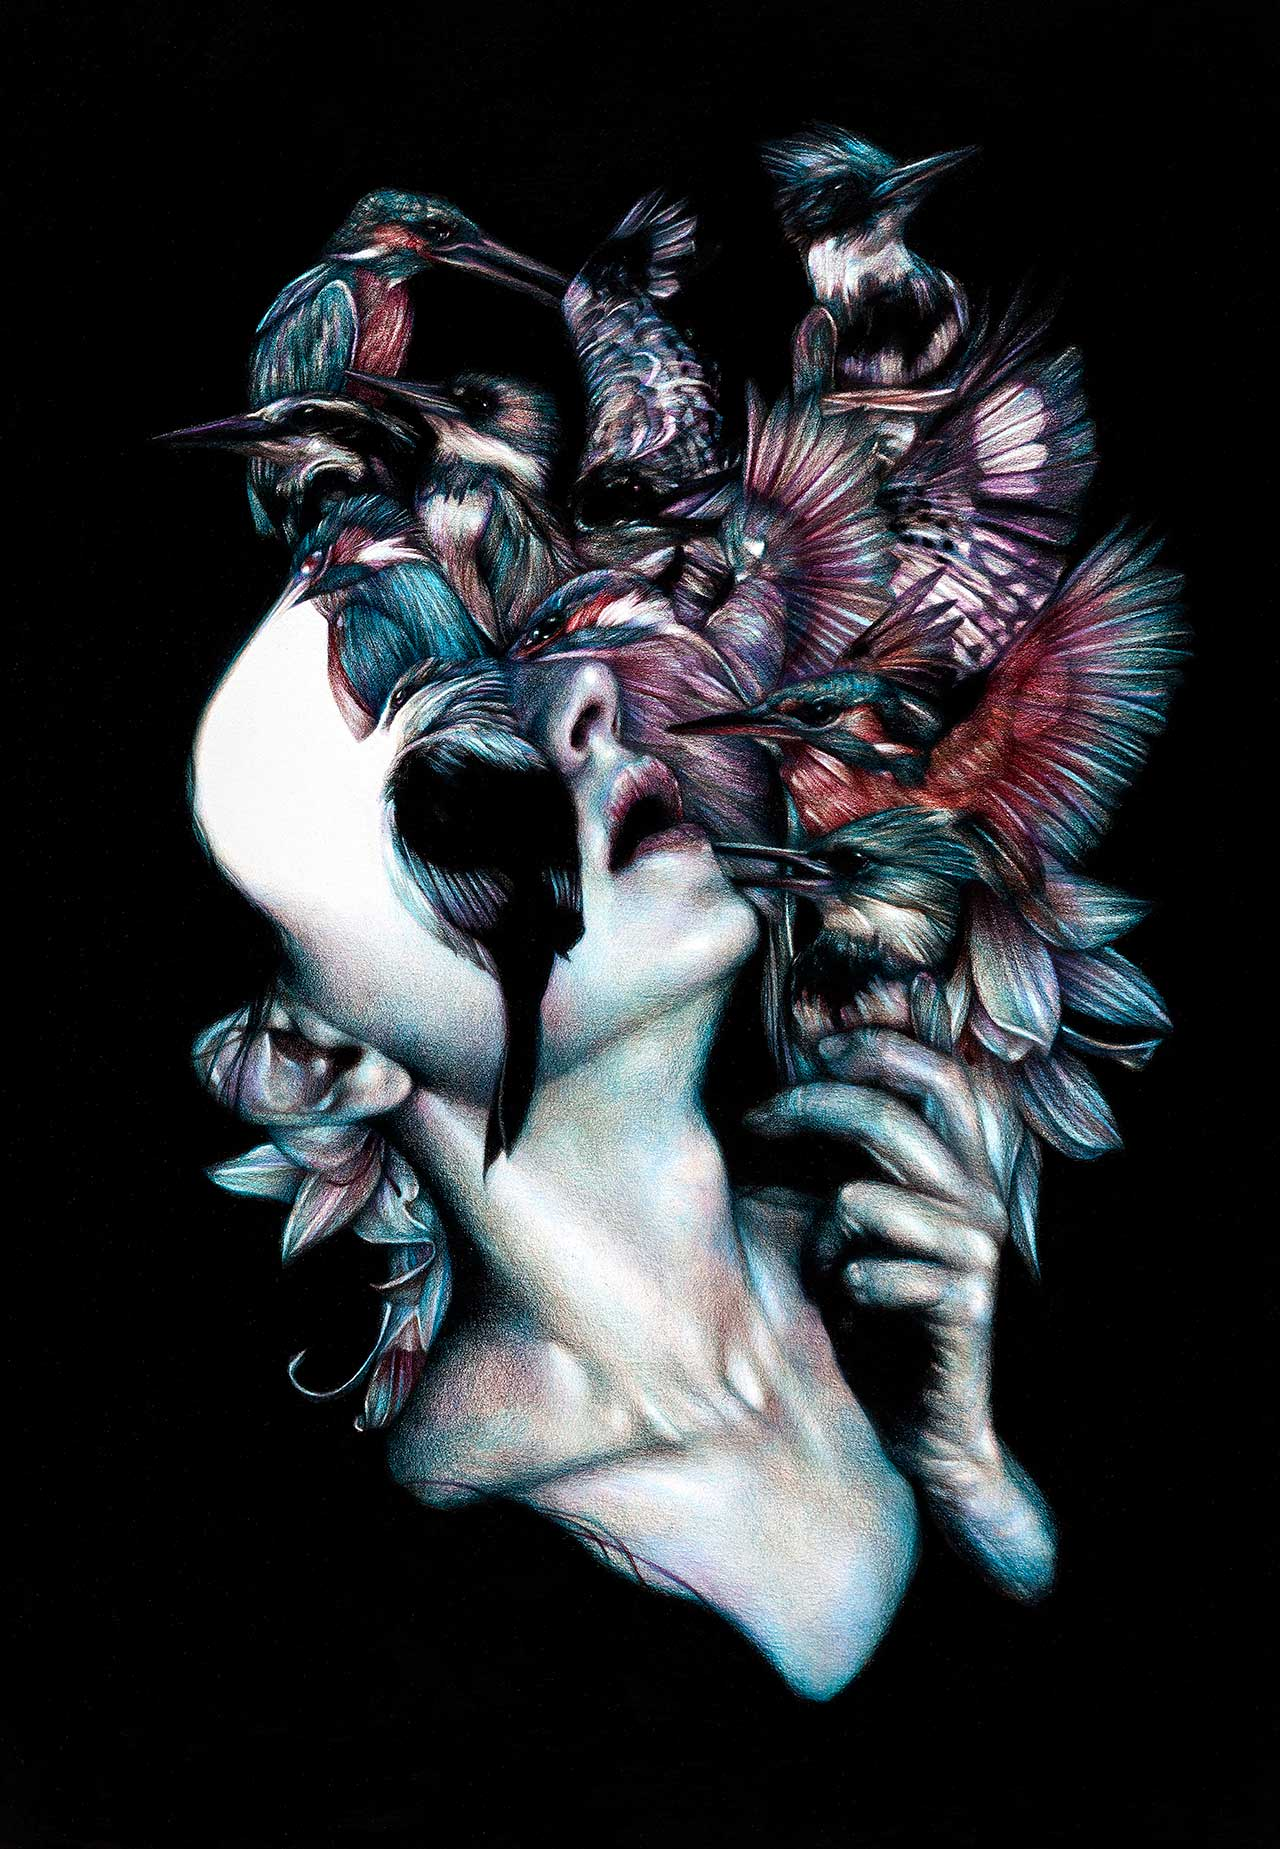 Marco Mazzoni, Kalós, éidos, scopéo, 2012. Colored pencils on paper, 65 x 45cm © Marco Mazzoni.